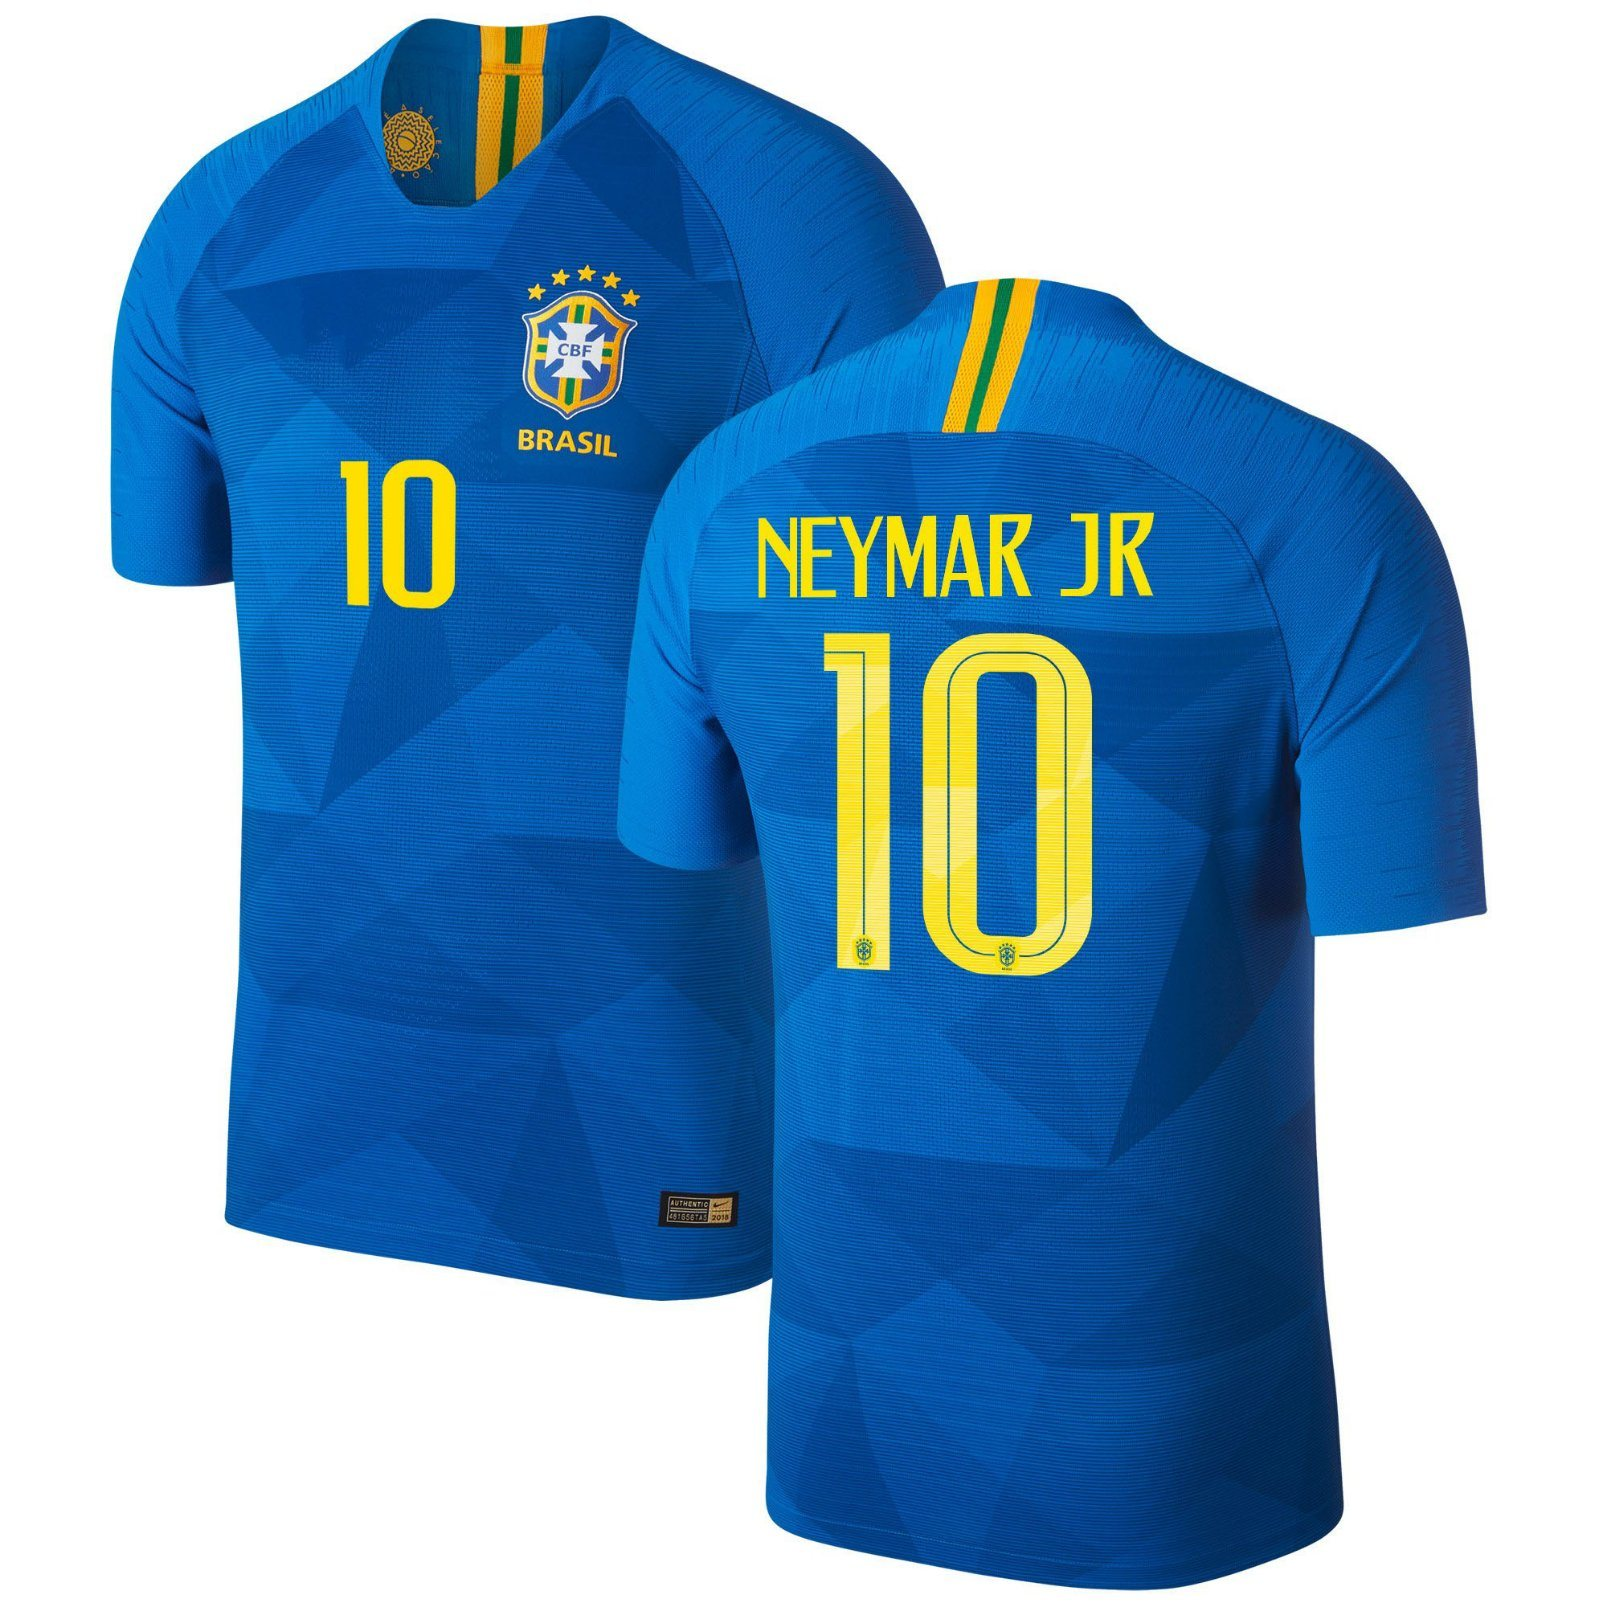 brand new f0d26 82f7b Best Selling Football Shirts In The World - DREAMWORKS